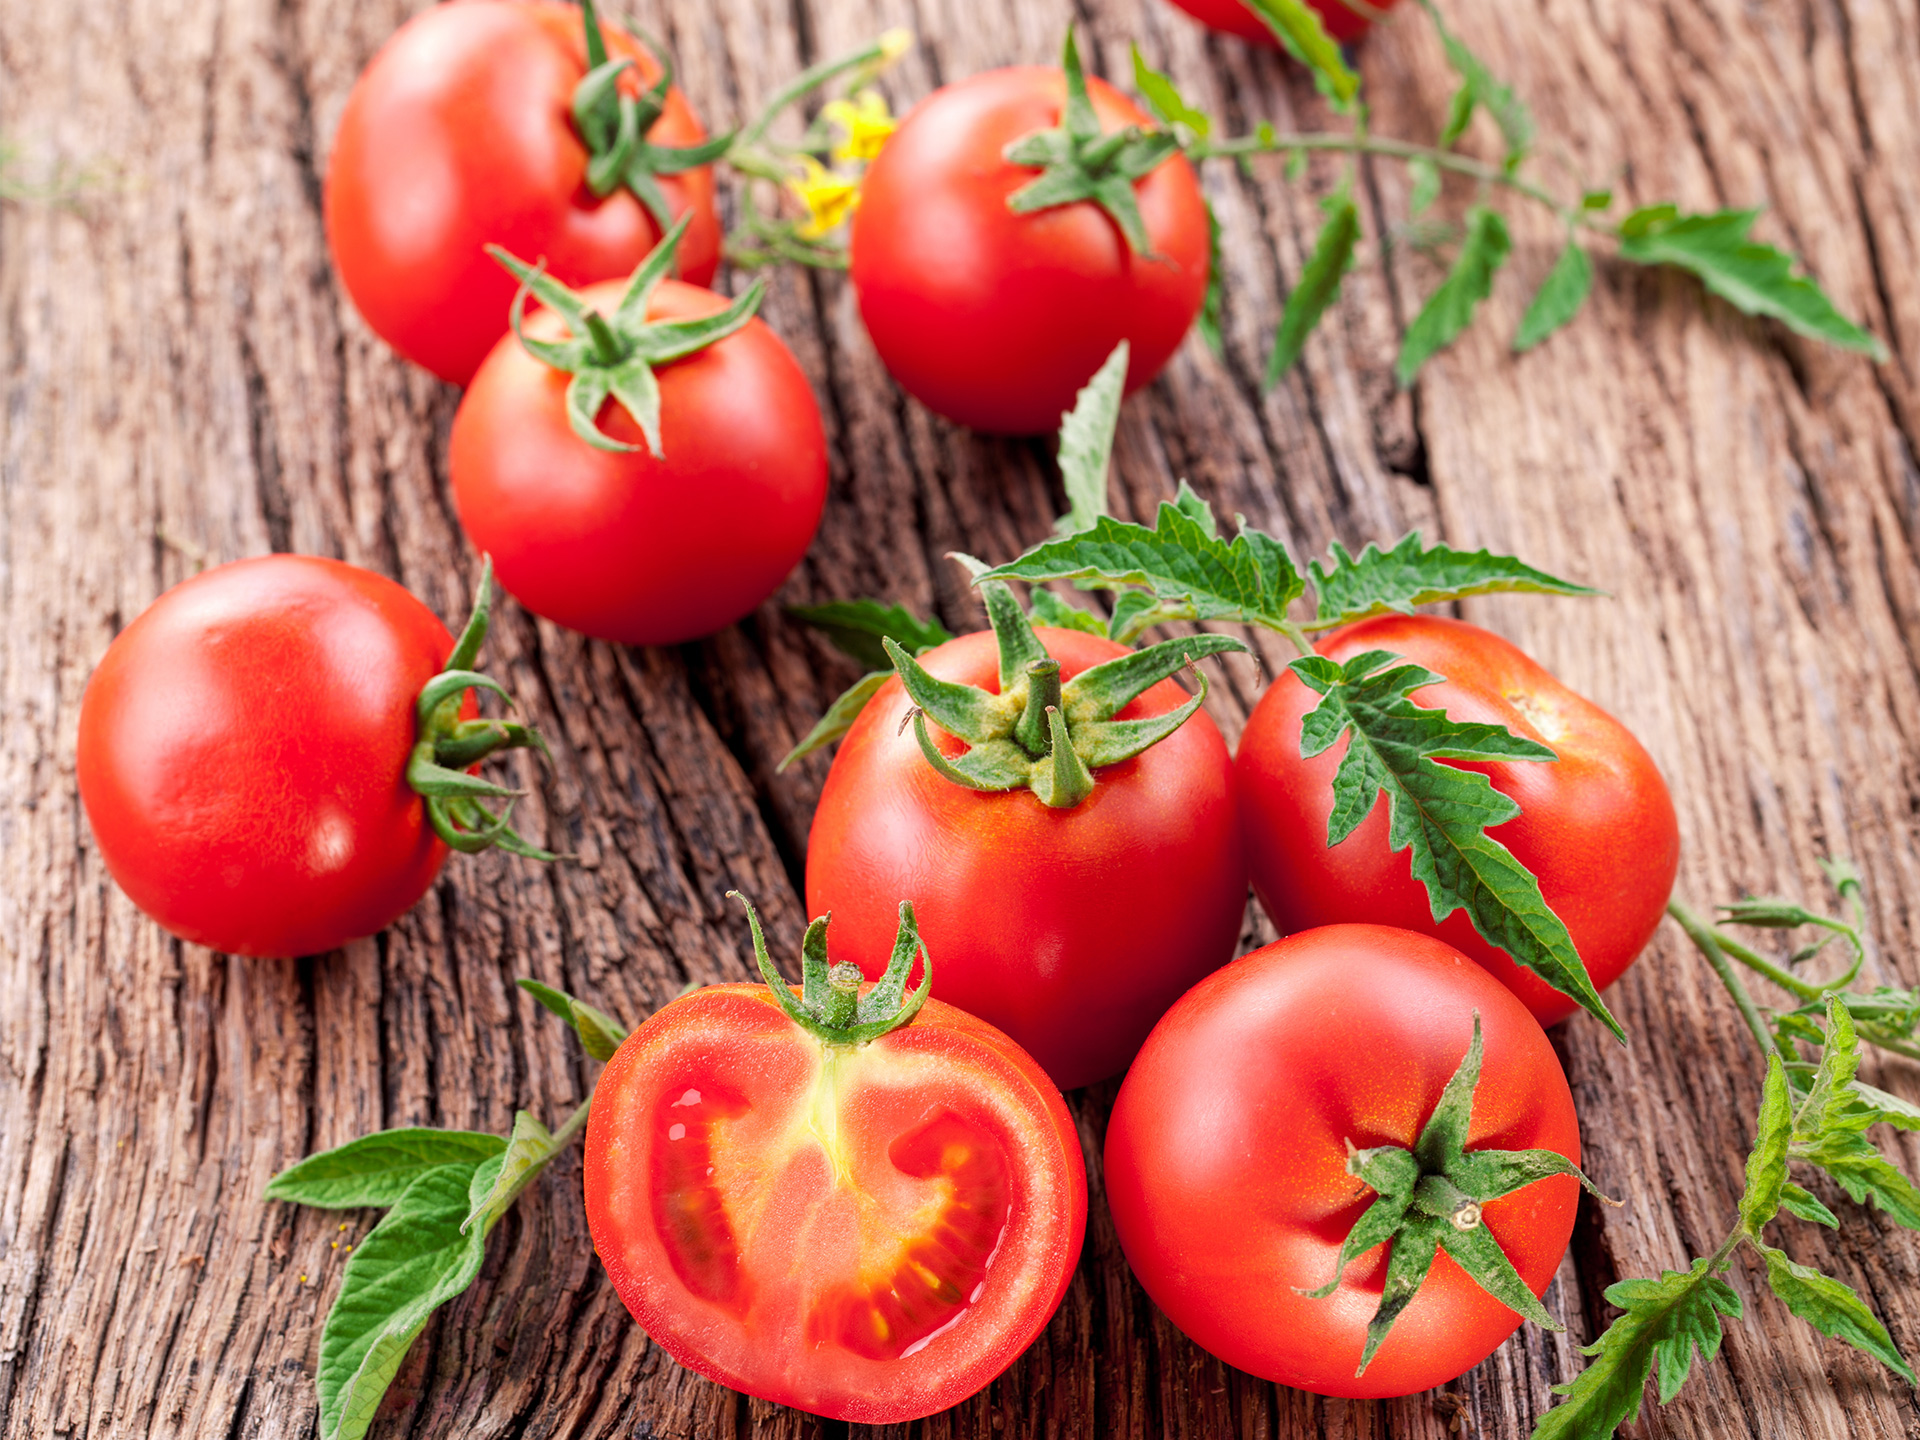 Tomato Fruit Health Benefits